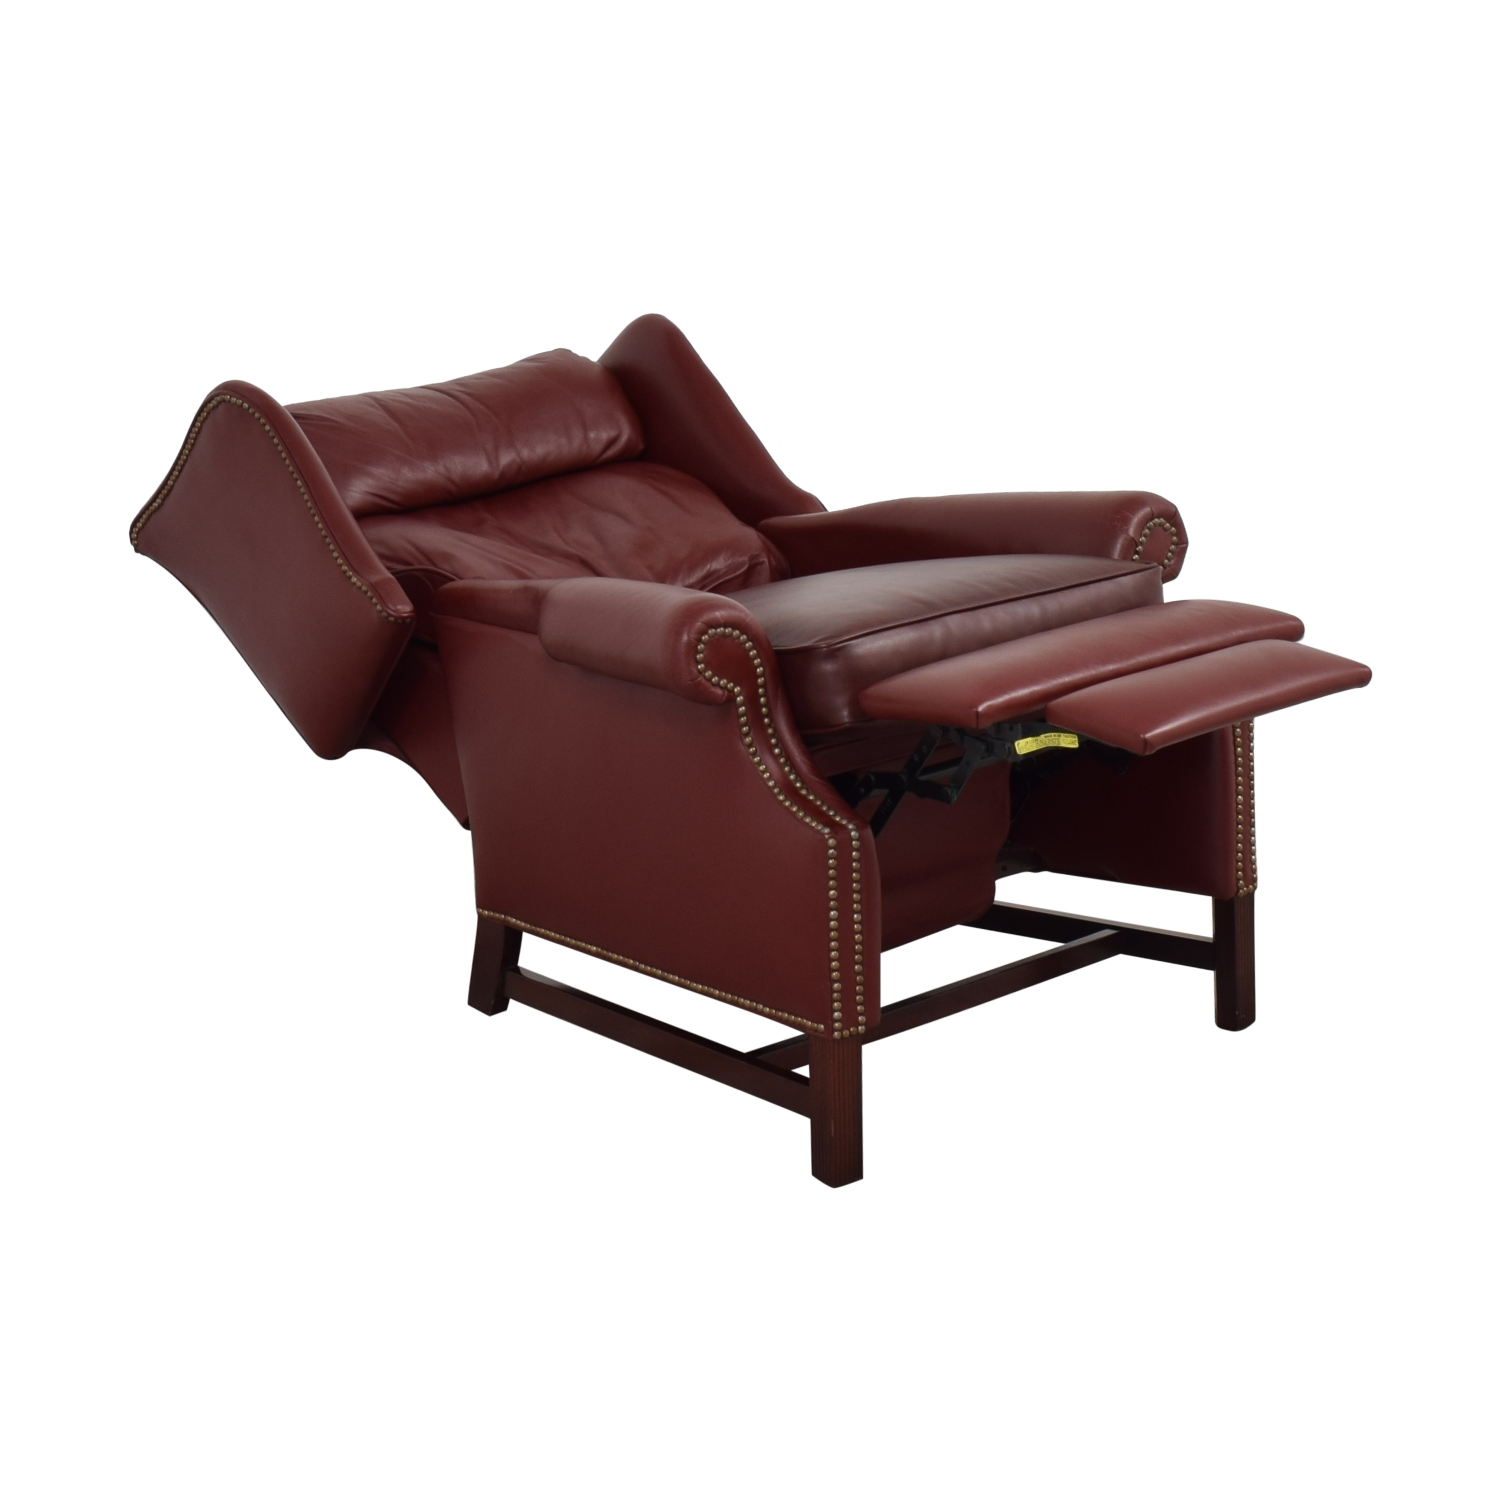 Classic Leather Classic Leather Recliner Chair price